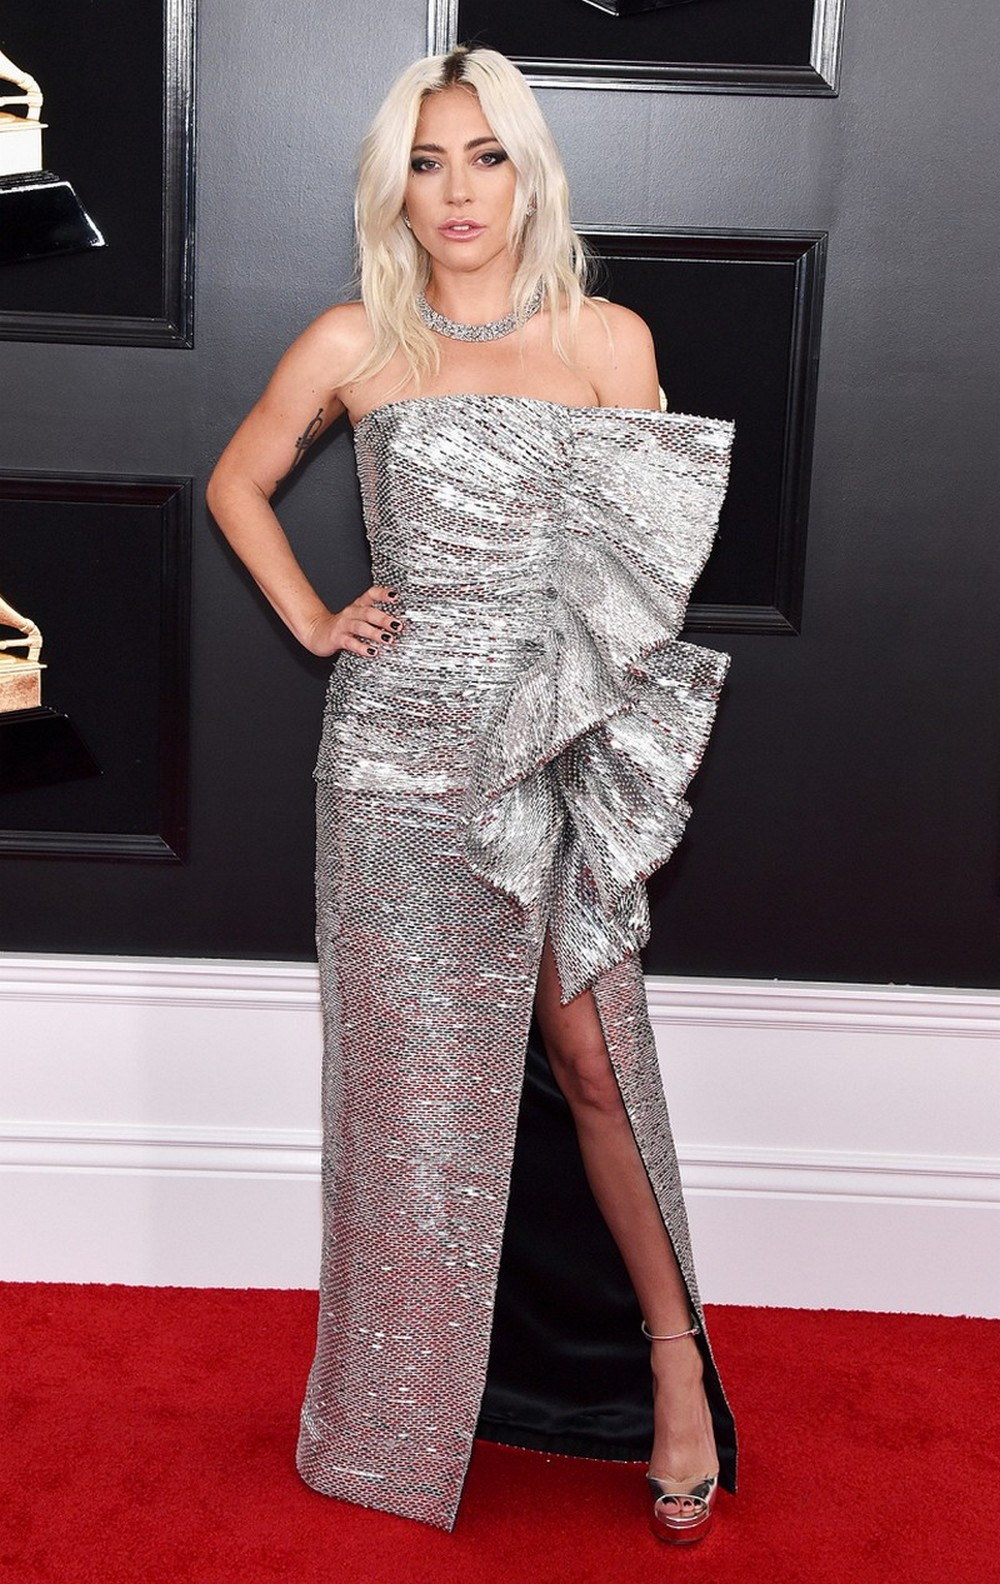 CovetED Reveals The Best High-Fashion Looks Of The 2019 Grammys 2019 grammys CovetED Reveals The Best High-Fashion Looks Of The 2019 Grammys CovetED Reveals The Best High Fashion Looks Of The 2019 Grammys 8